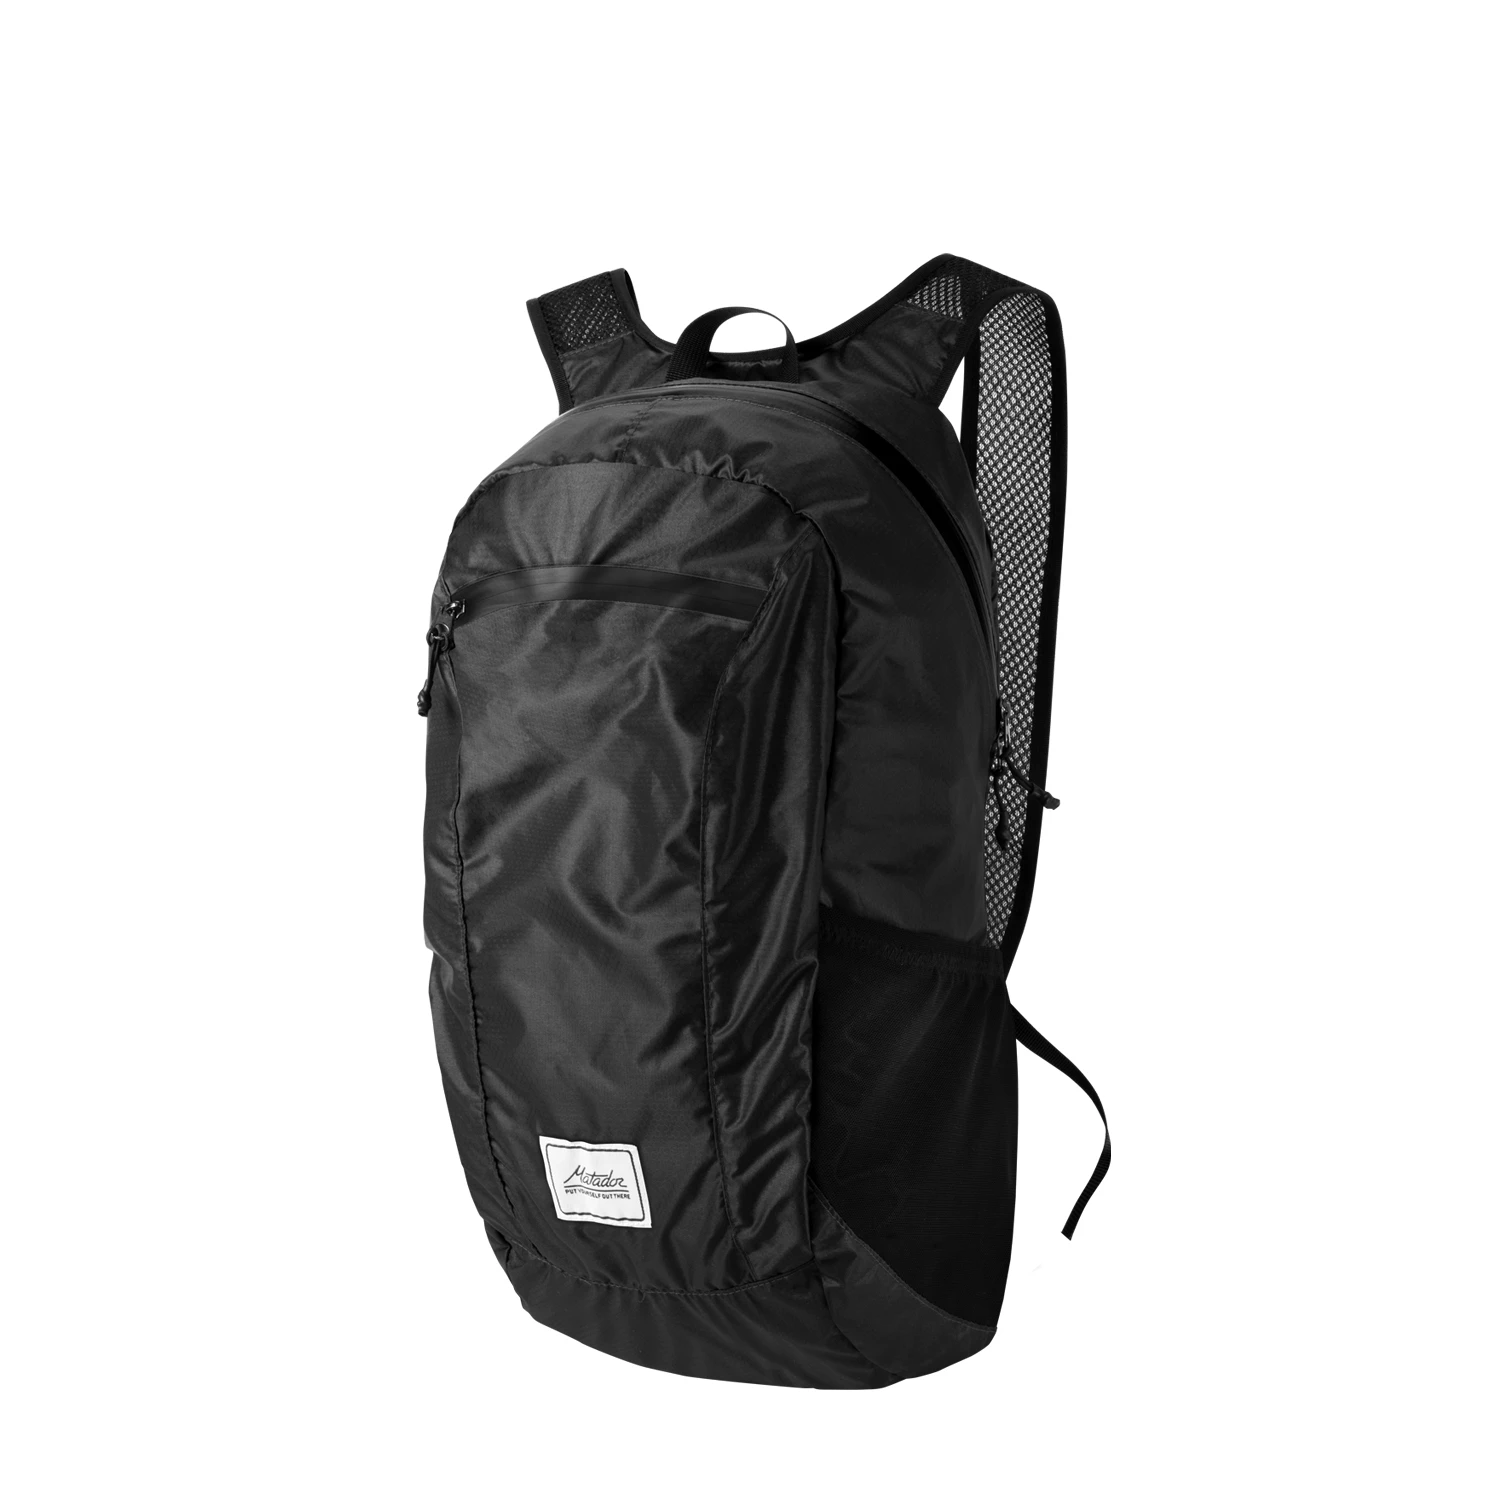 Matador DL16 Packable Backpack - Grey